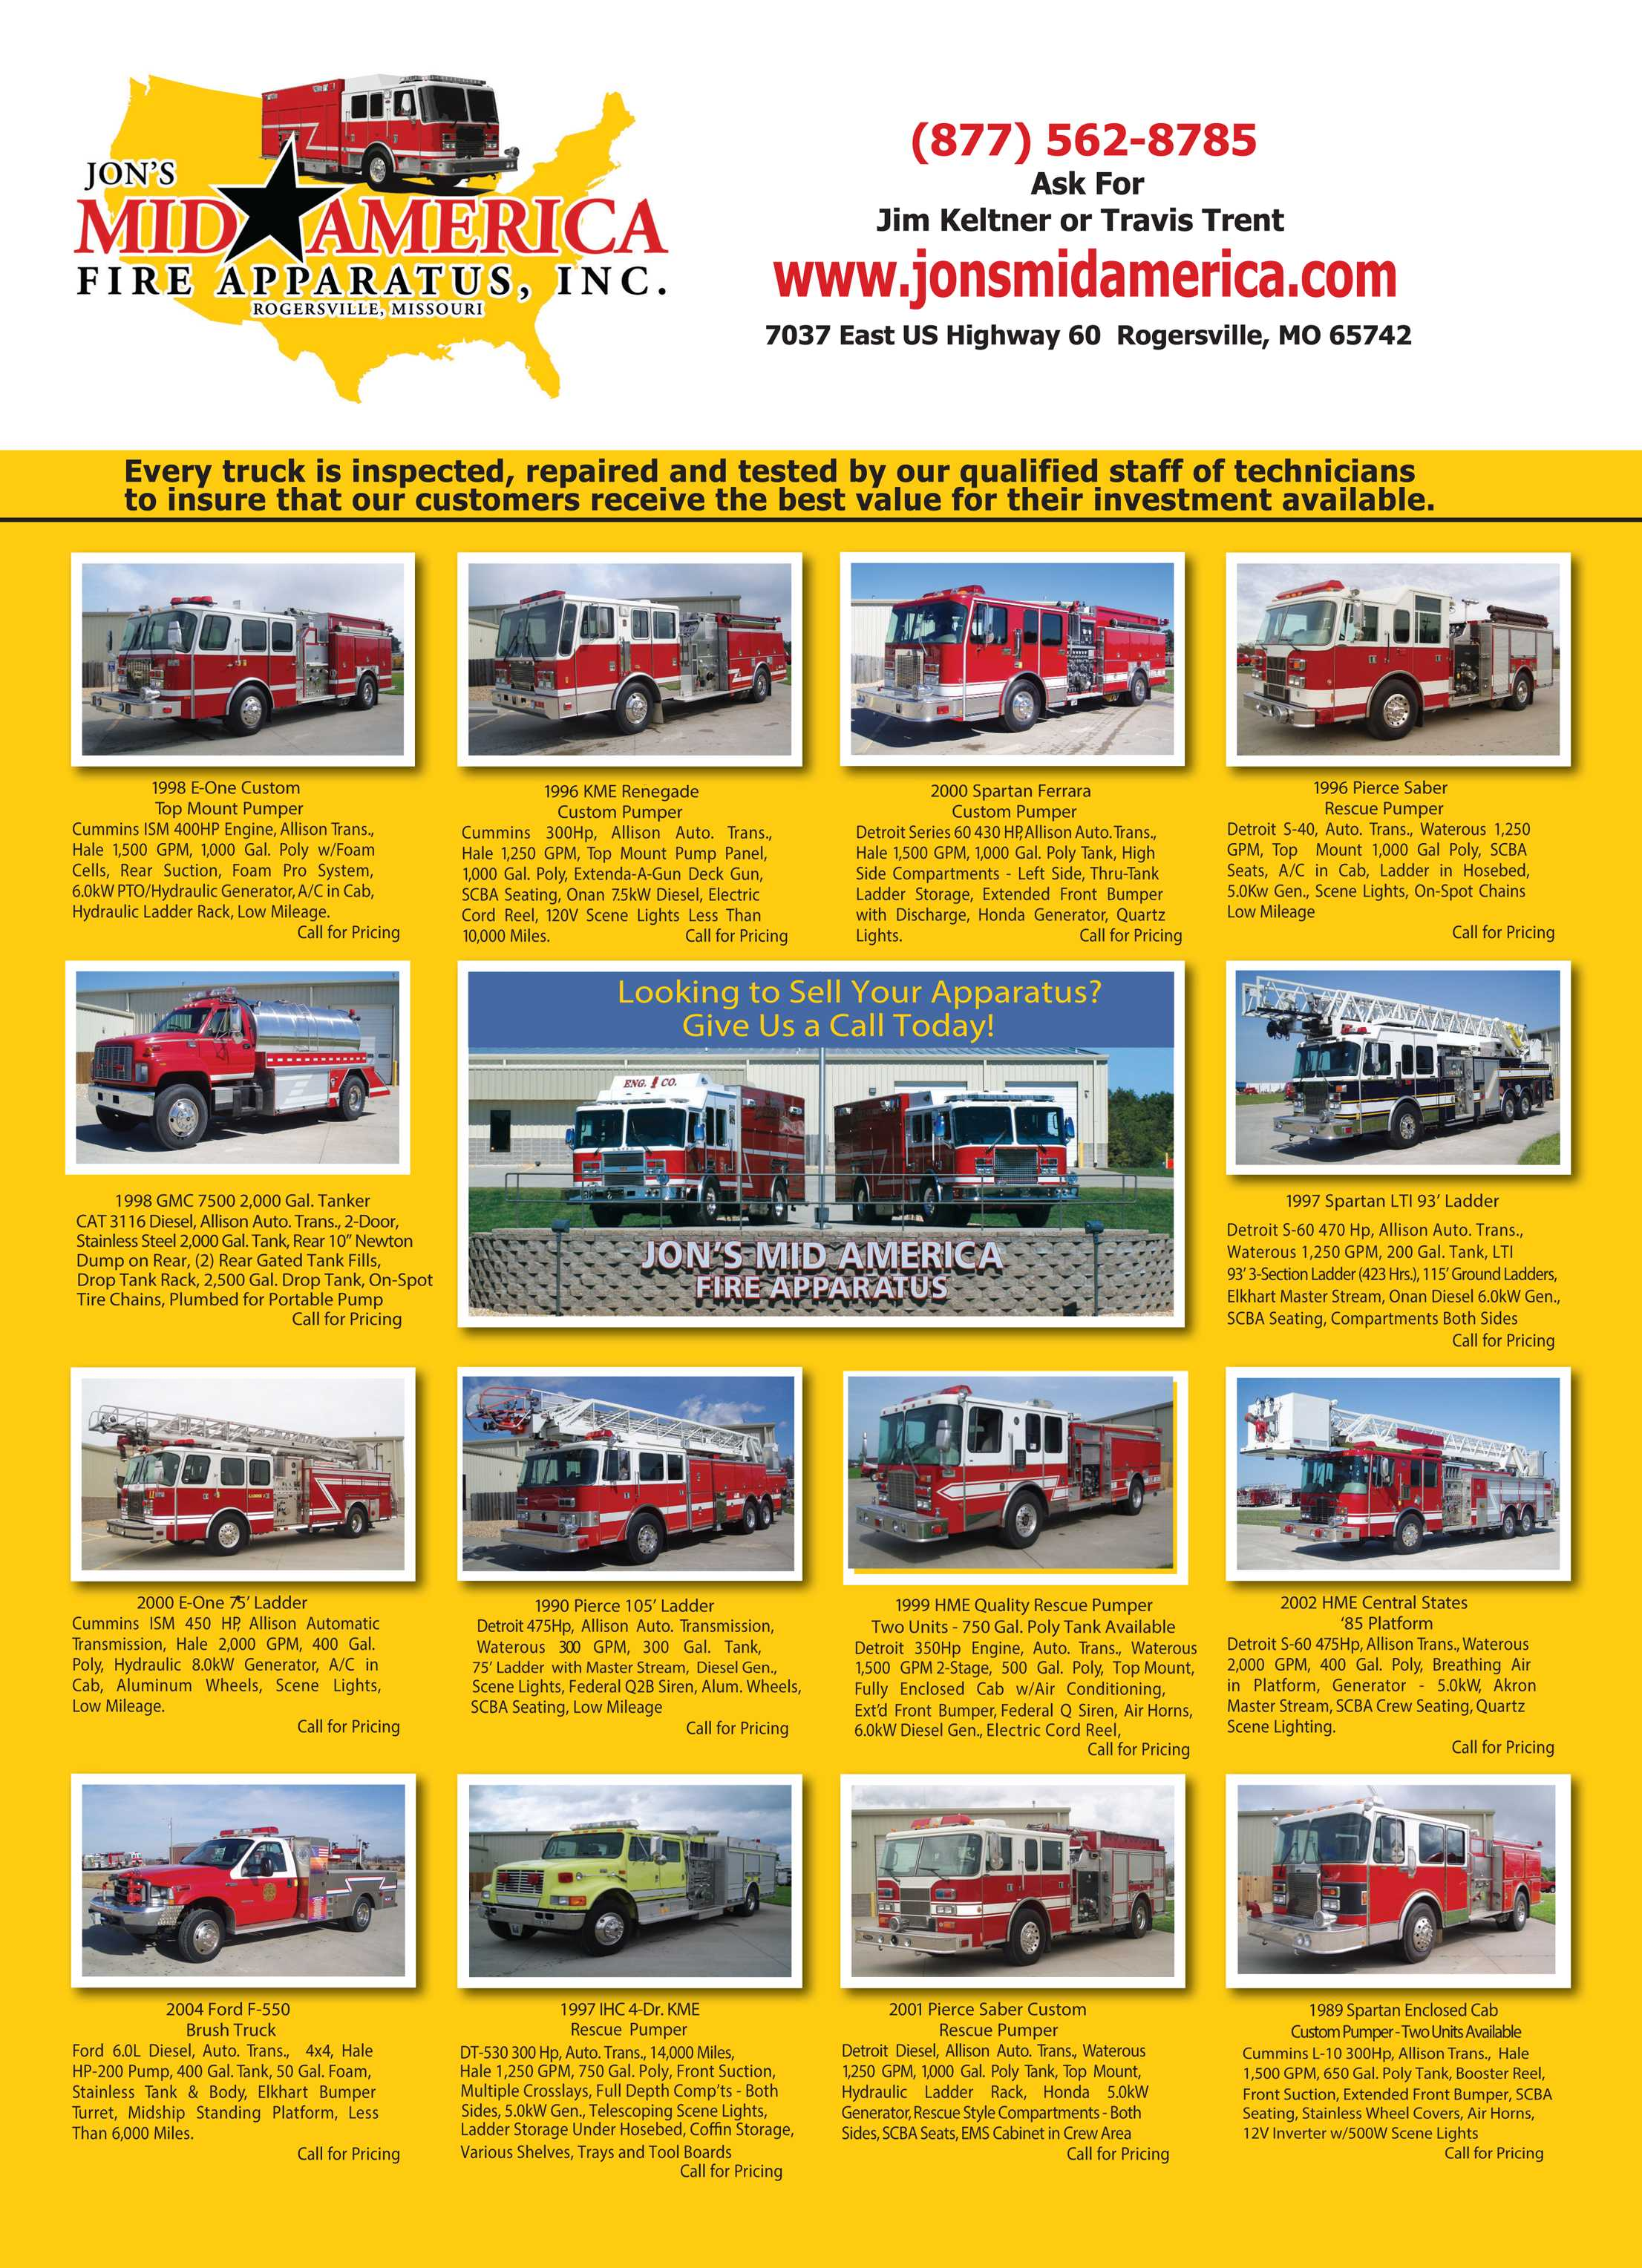 Fire Apparatus Magazine - August 2014 - page 59